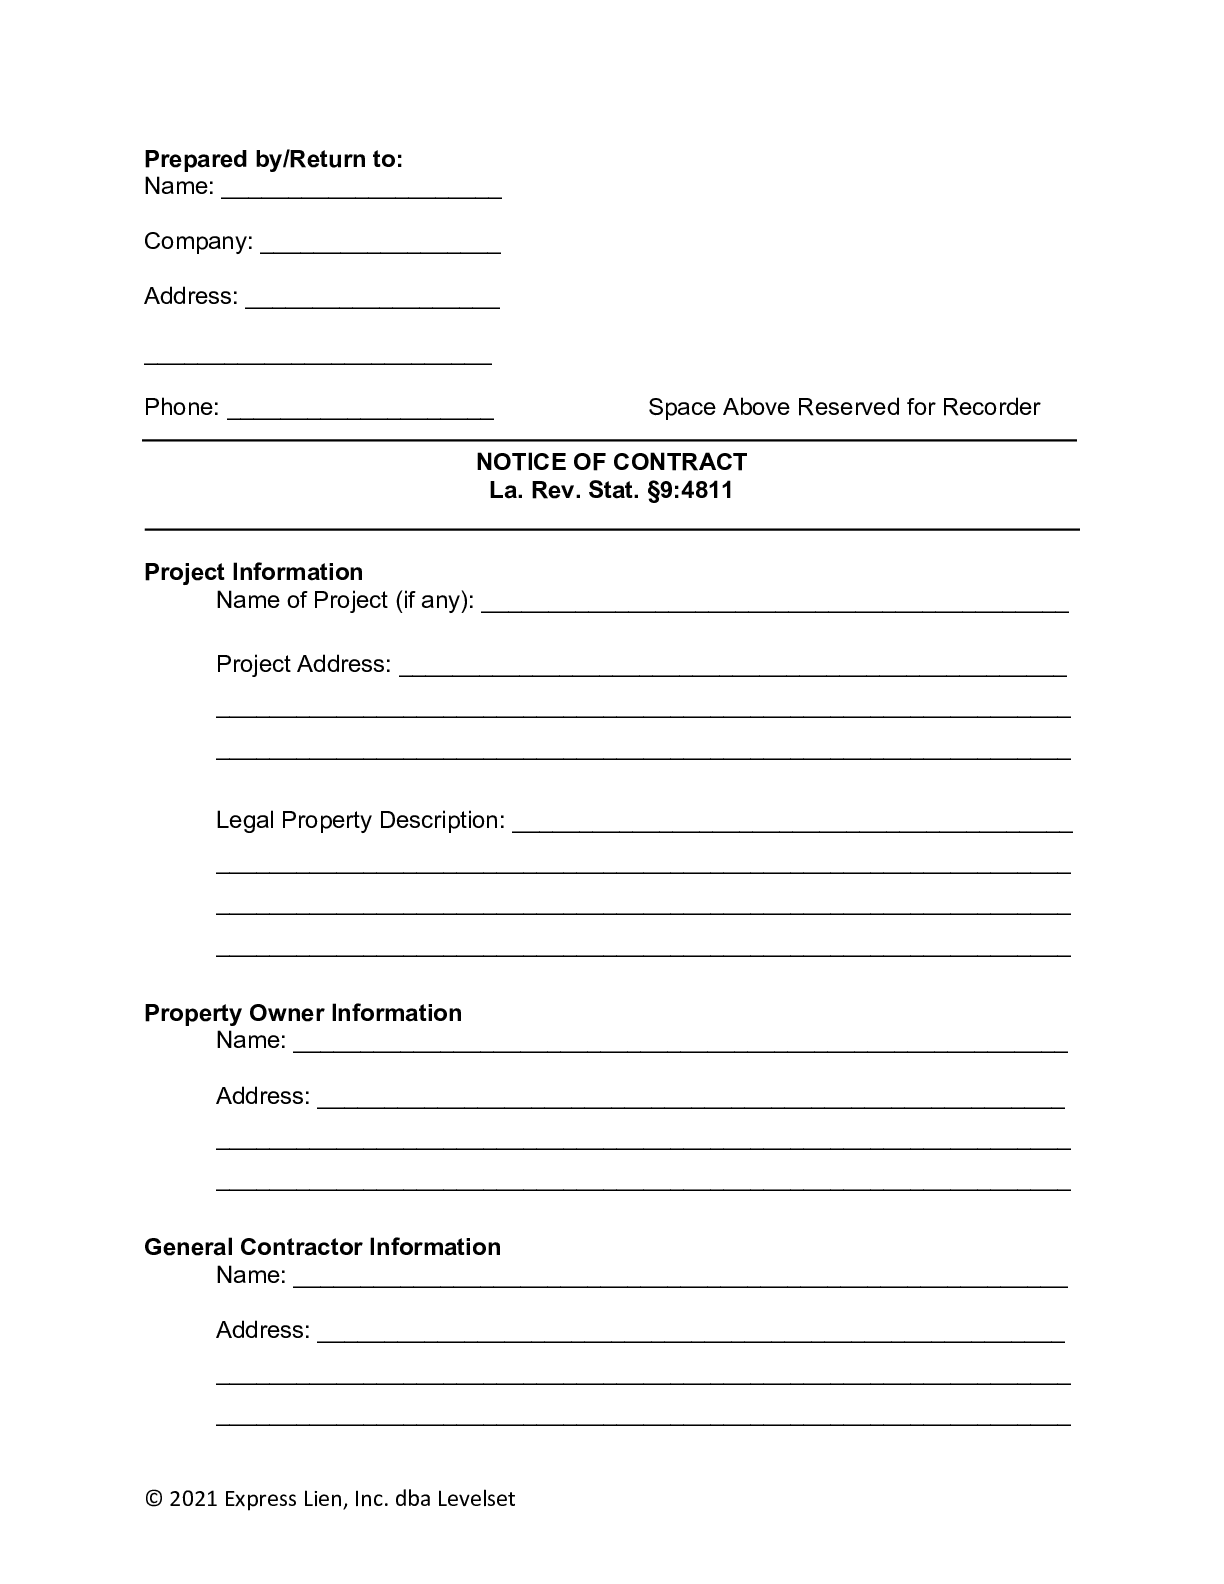 Louisiana Notice of Contract Form